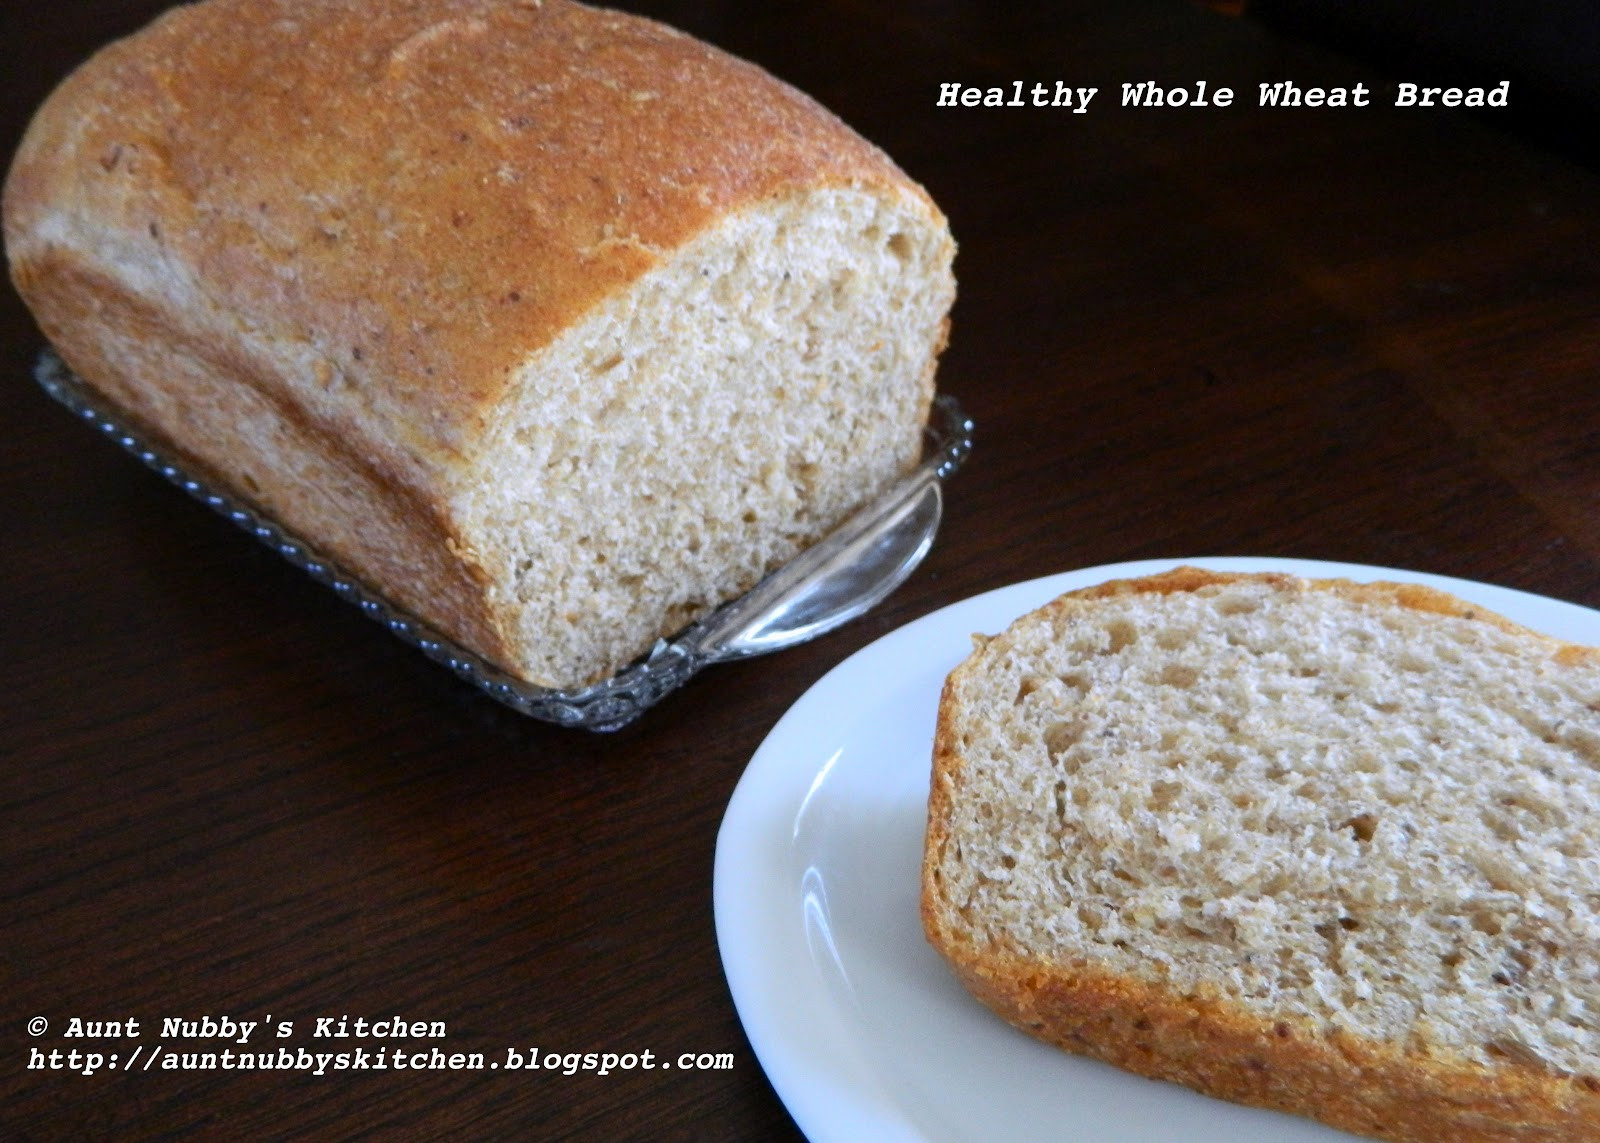 Healthy Whole Wheat Bread  Sugar Spice and Spilled Milk Healthy Whole Wheat Bread